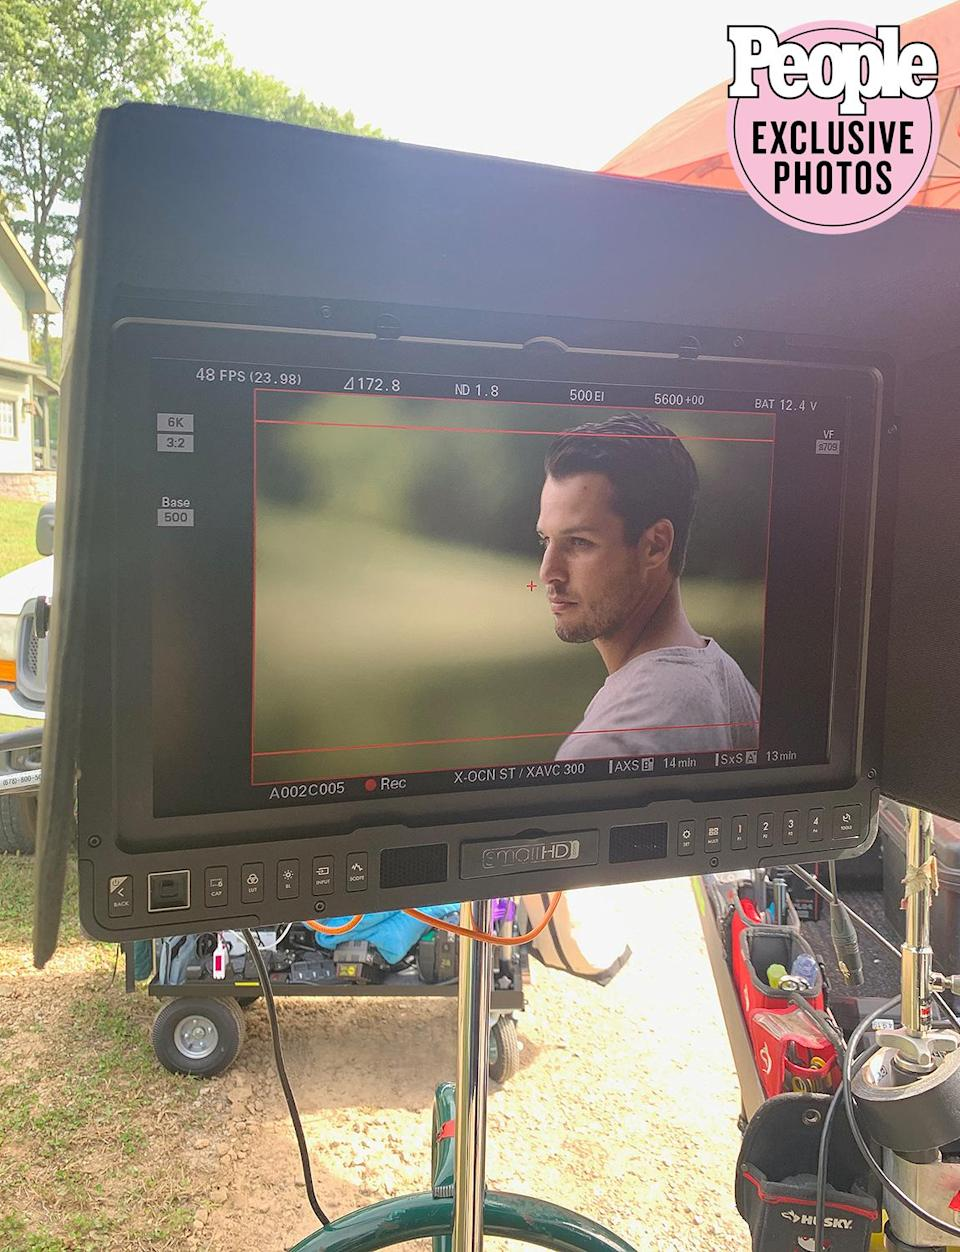 """<p>This was Brendan's first on-camera video shoot with me. """"<a href=""""https://people.com/country/miranda-lambert-brendan-mcloughlin-settling-down-music-video/"""" rel=""""nofollow noopener"""" target=""""_blank"""" data-ylk=""""slk:Settling Down"""" class=""""link rapid-noclick-resp"""">Settling Down</a>"""" was his favorite song from my <em>Wildcard</em> record so it was great we were able to shoot this video together and give fans a glimpse into our life on the farm.</p>"""